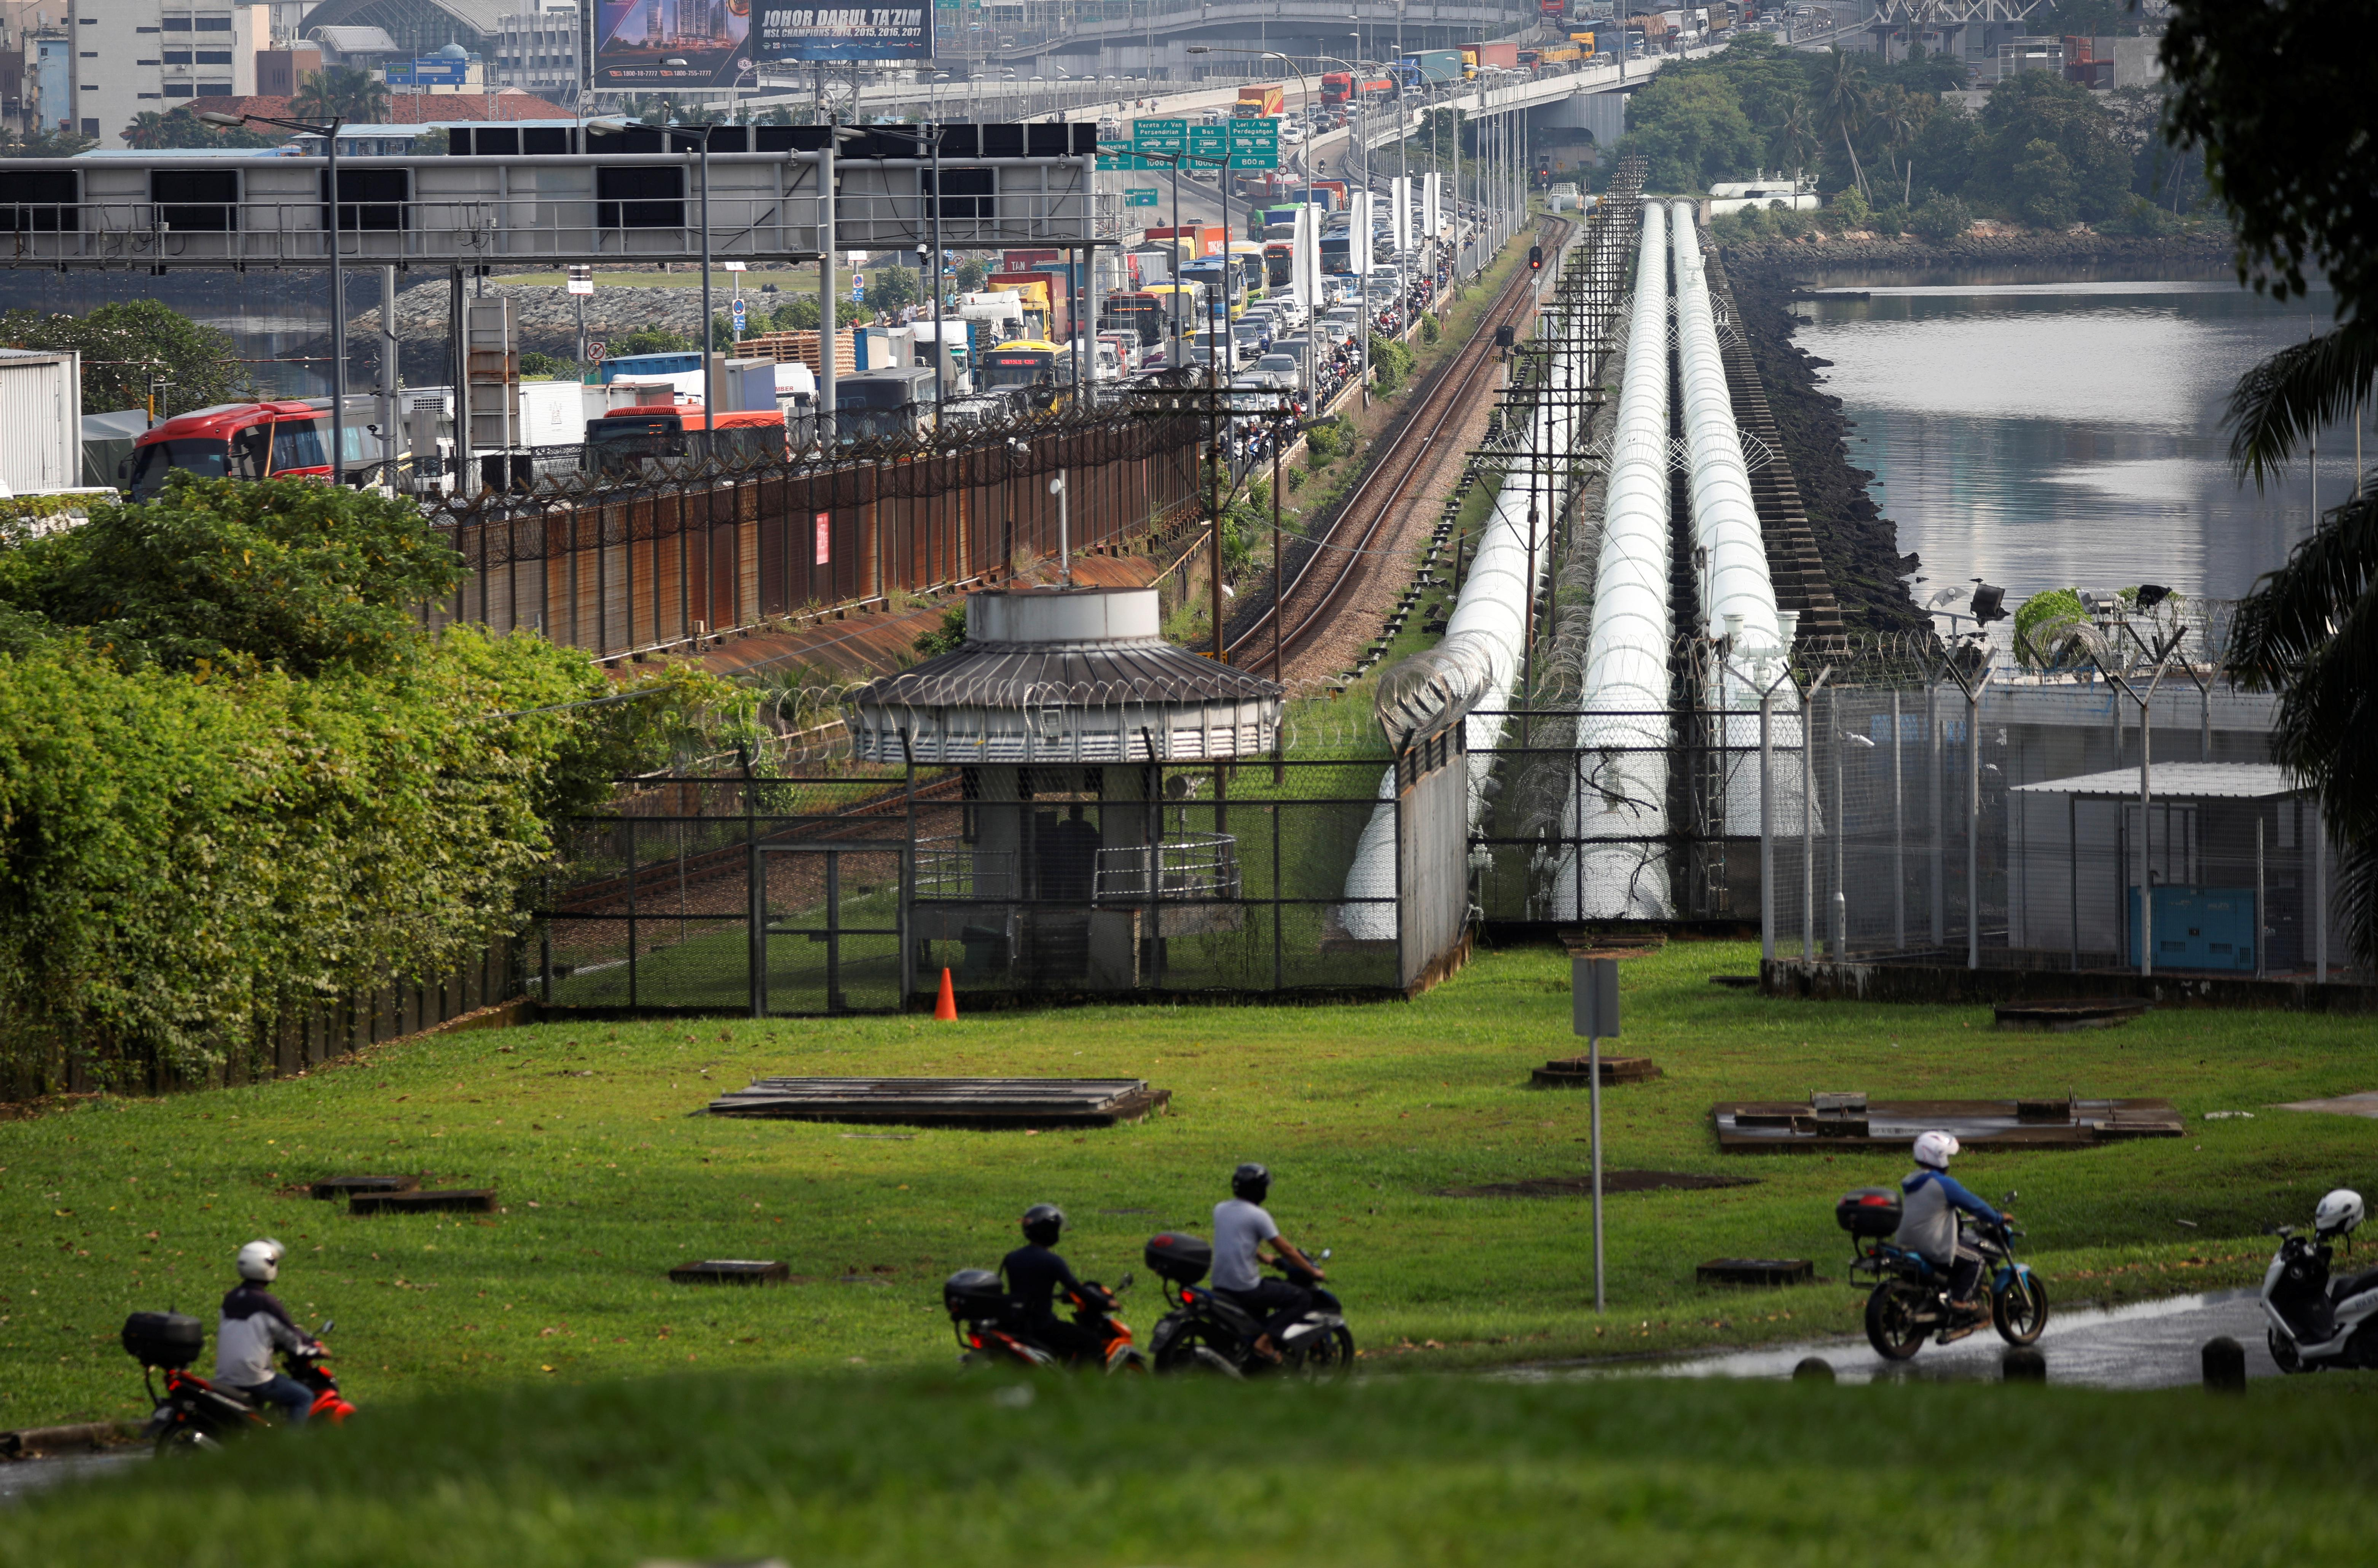 Singapore Should Revise Water Deal or Risk Crisis, Malaysia Says